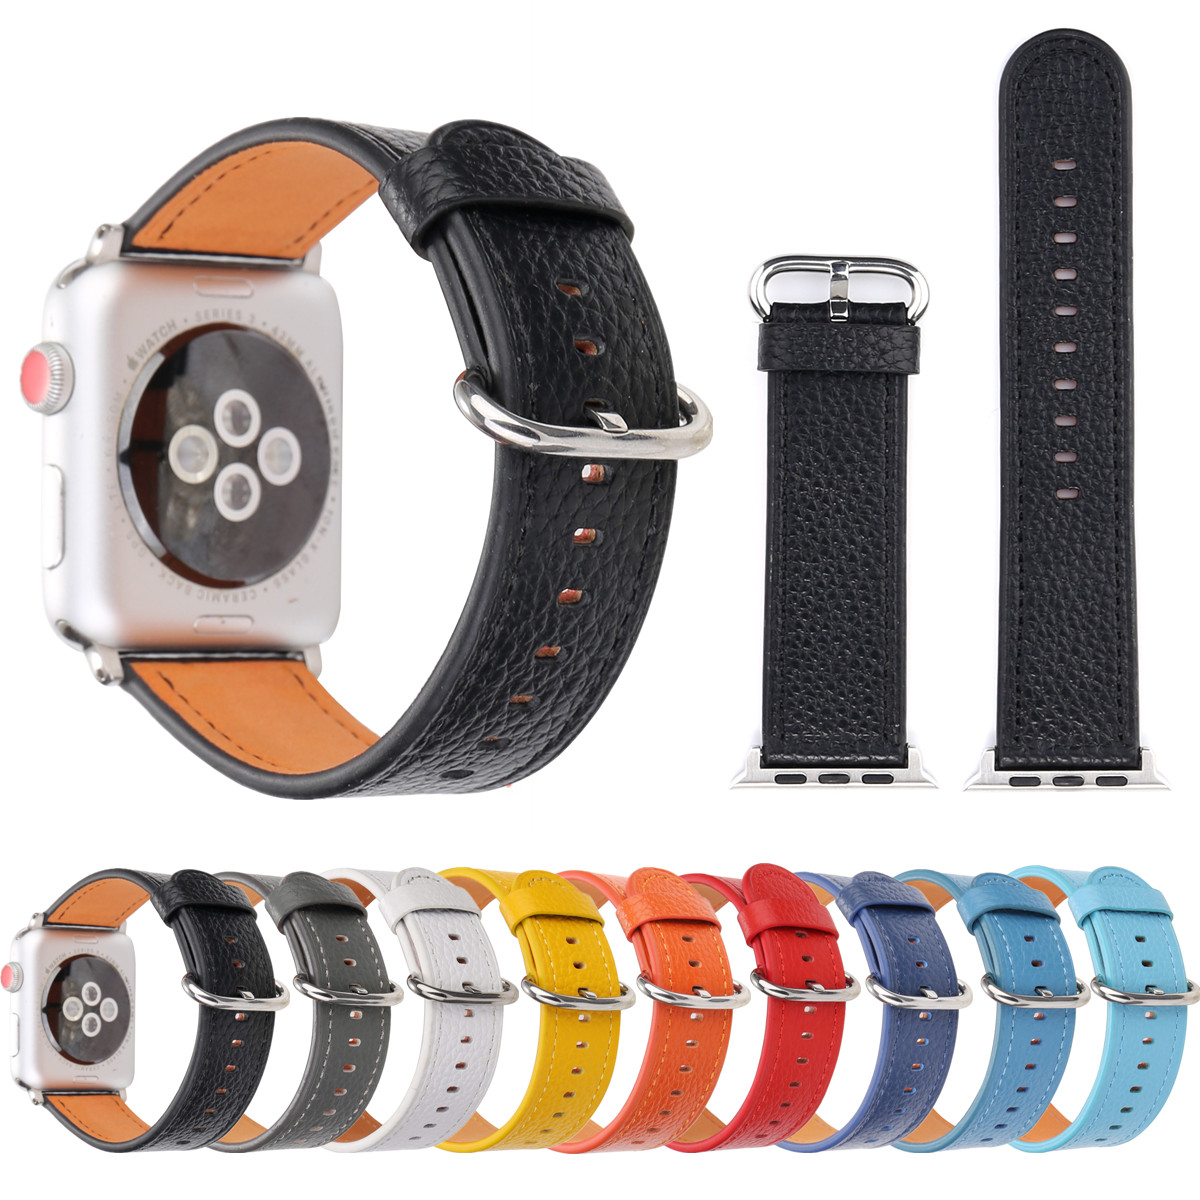 Watch Accessories Watchband For Apple Watch Bands 44mm 40mm Leather Watch Strap 42mm 38mm Series 4 3 2 For iWatch Sport Bracelet